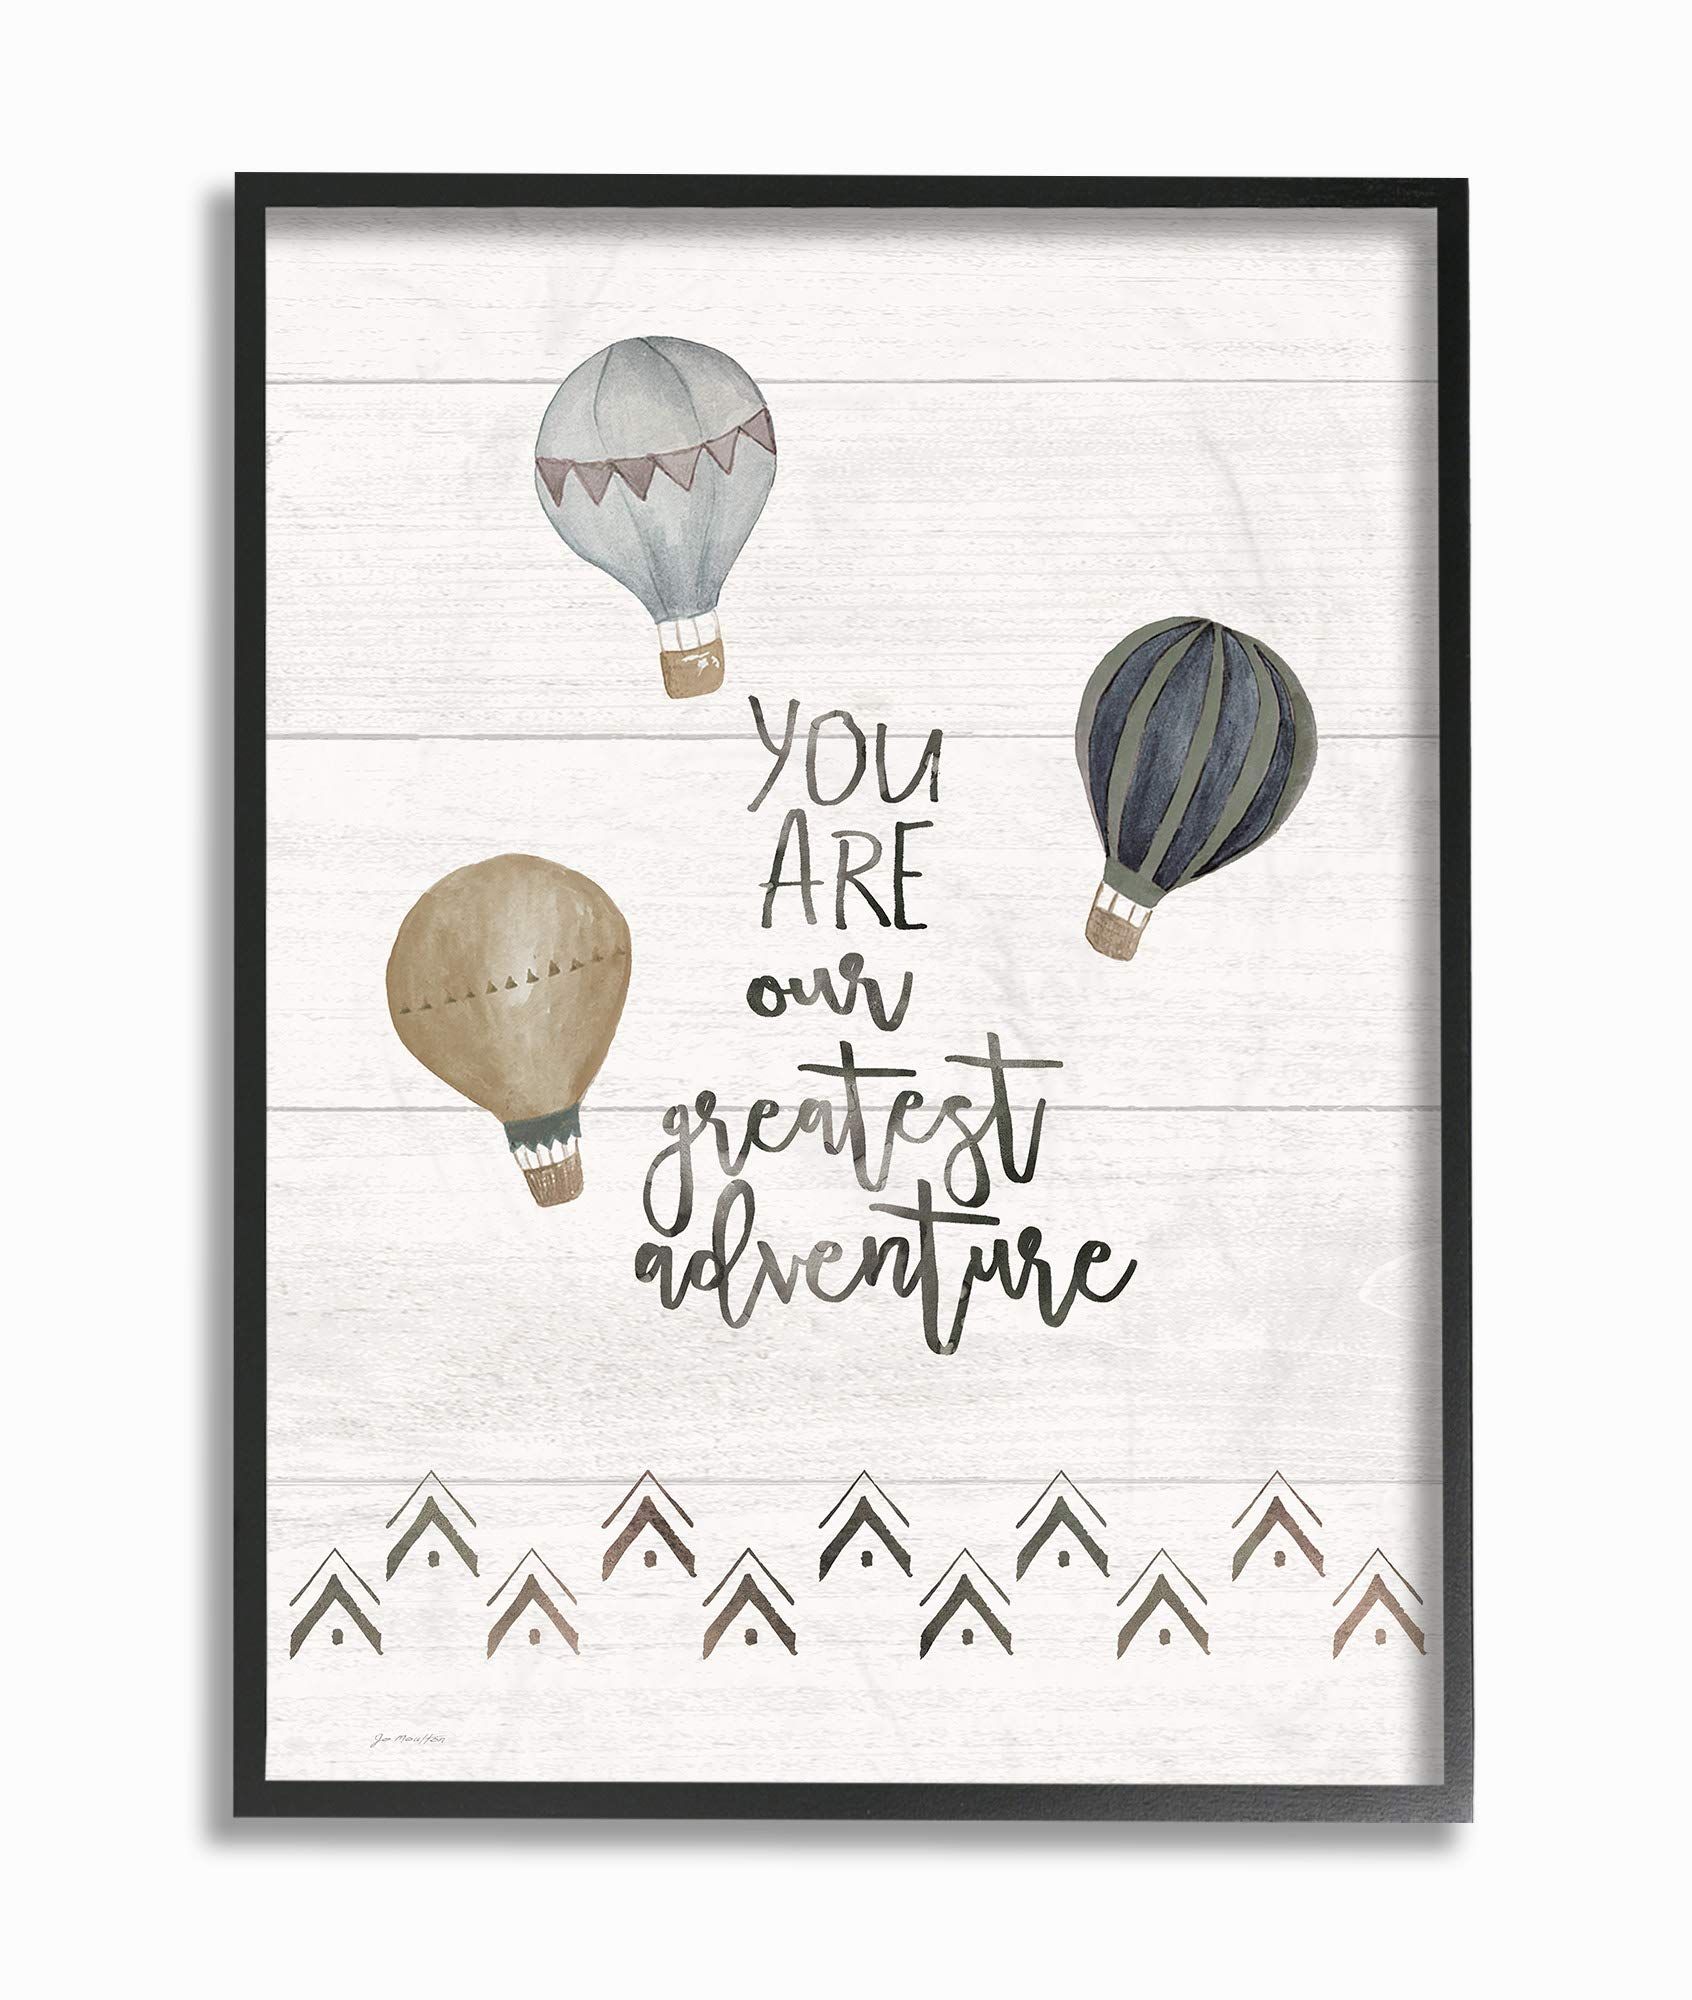 The Kids Room By Stupell Our Greatest Adventure Neutral Grey Hot Air Balloons Framed Texturized Art, 11 x 14, Proudly Made in USA, Multi-Color